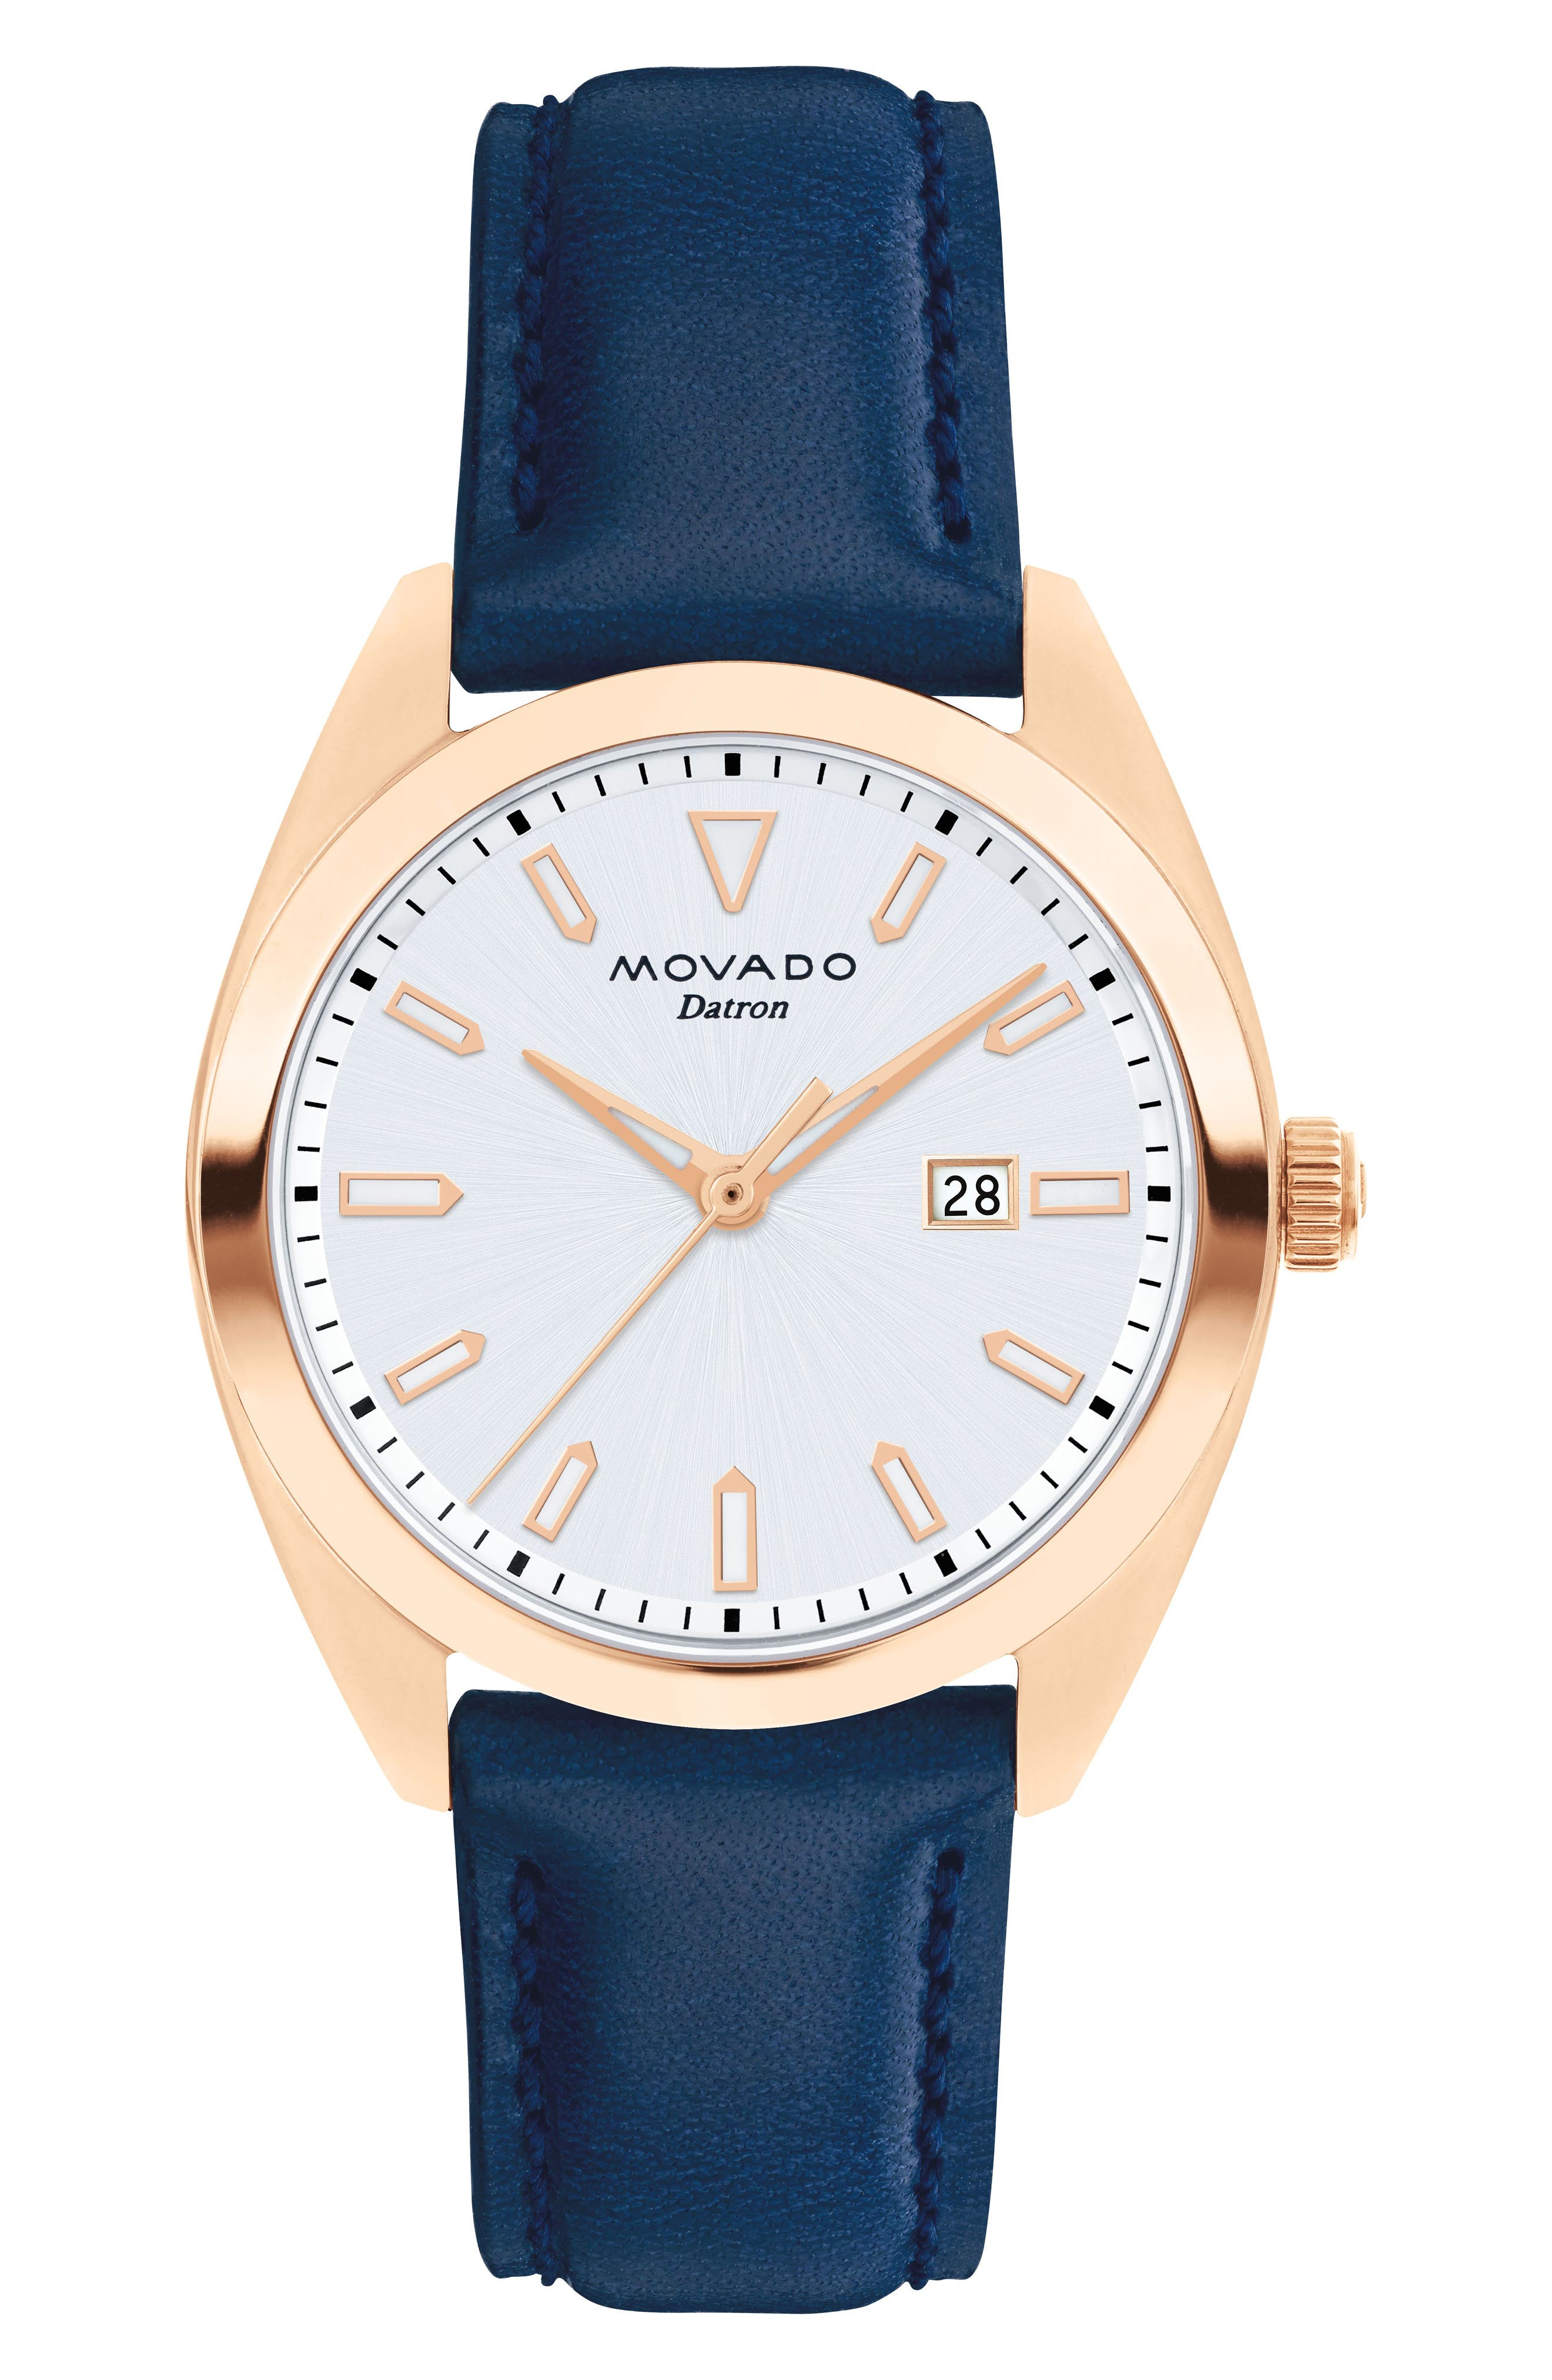 Heritage Datron Rose Goldplated Stainless Steel & Leather Strap Watch in Blue/ White/ Rose Gold